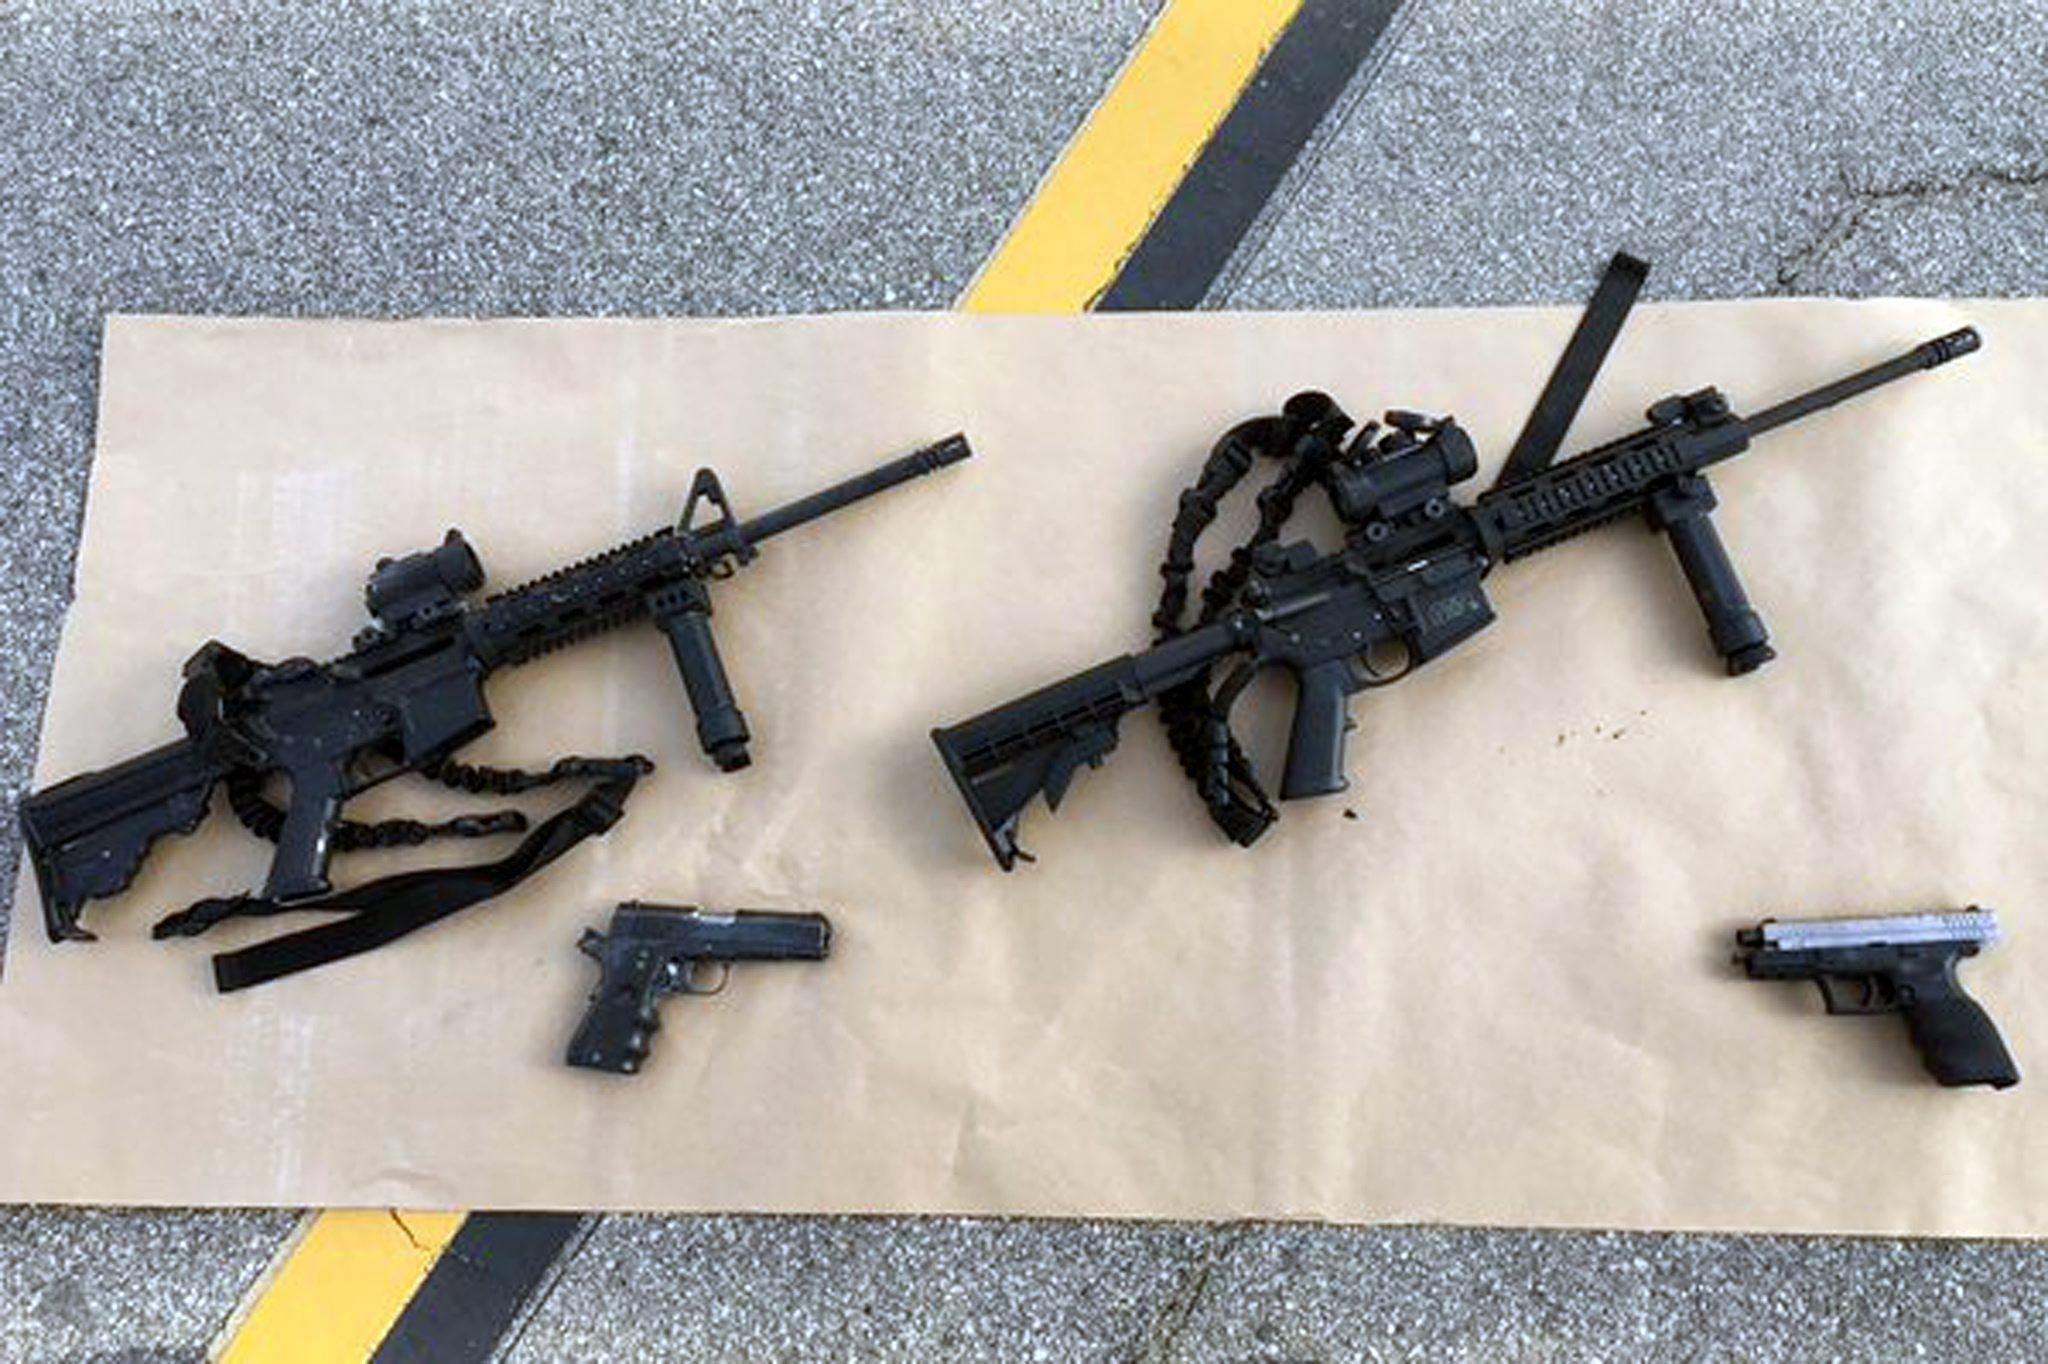 Weapons and ammunition carried by suspects involved in a mass shooting in San Bernardino, California